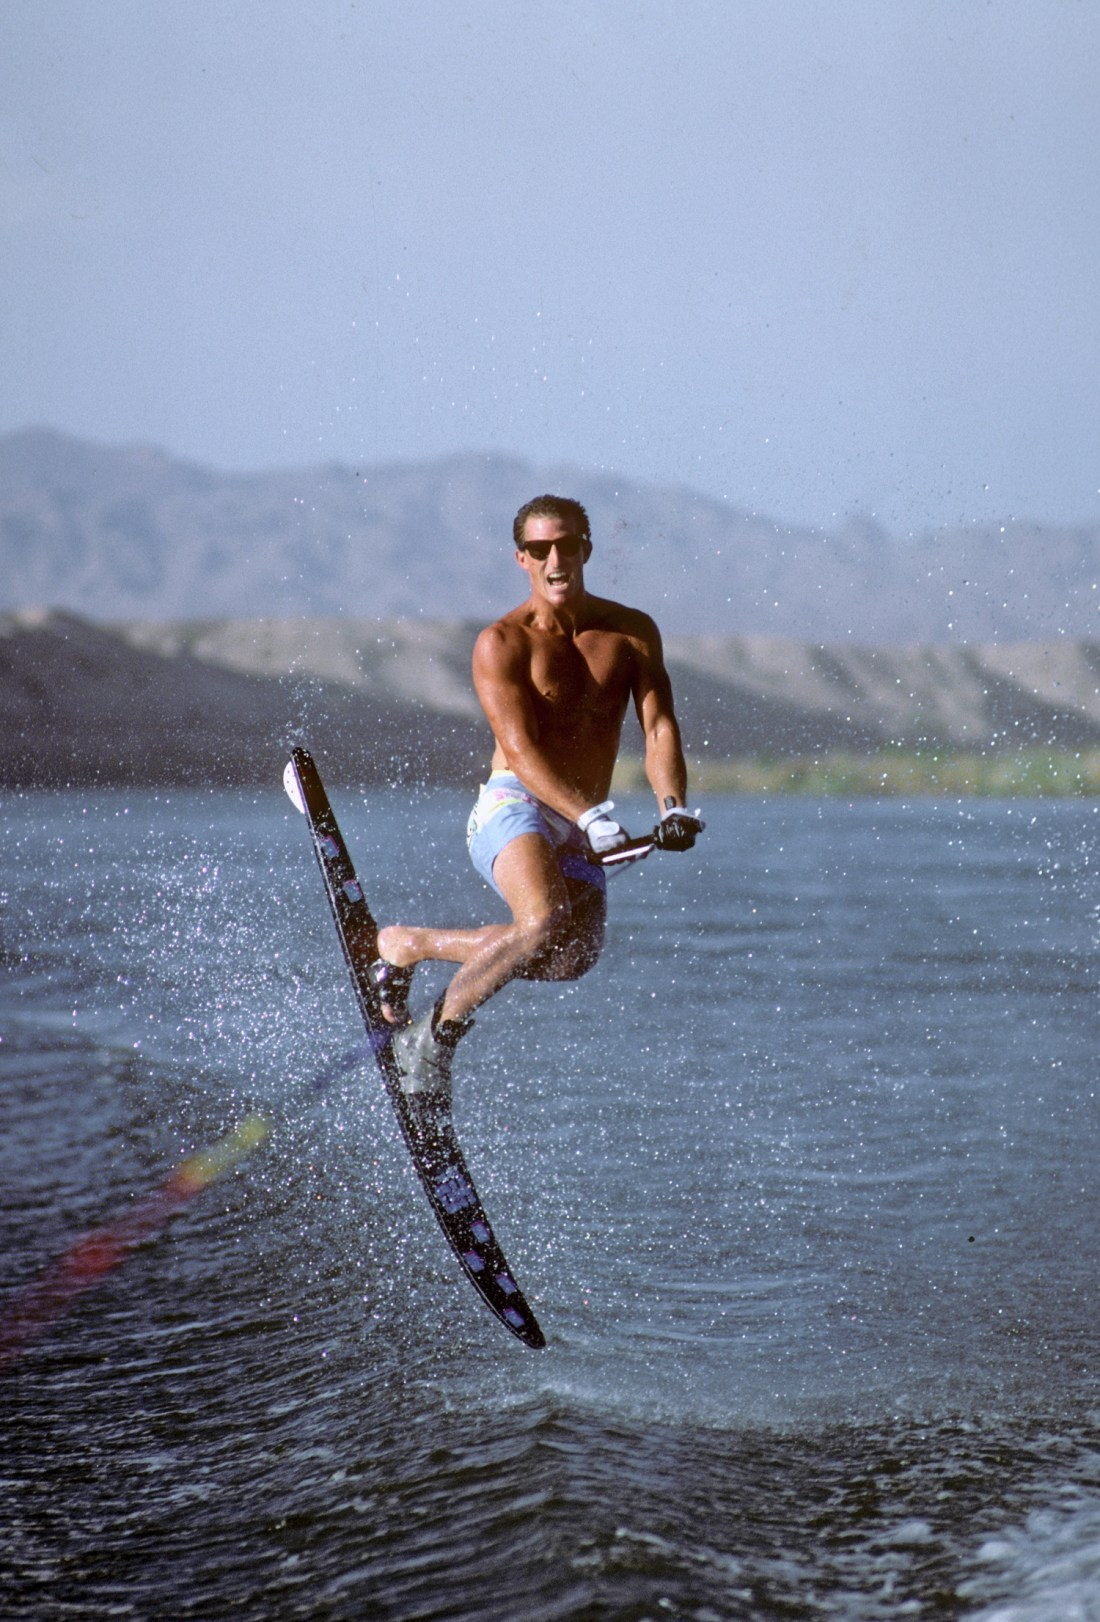 c_TonyKlarich.com_Water_Skiing_NOSHIRTMULEKICK_HotDog_Creative_Commons_Free_3MR